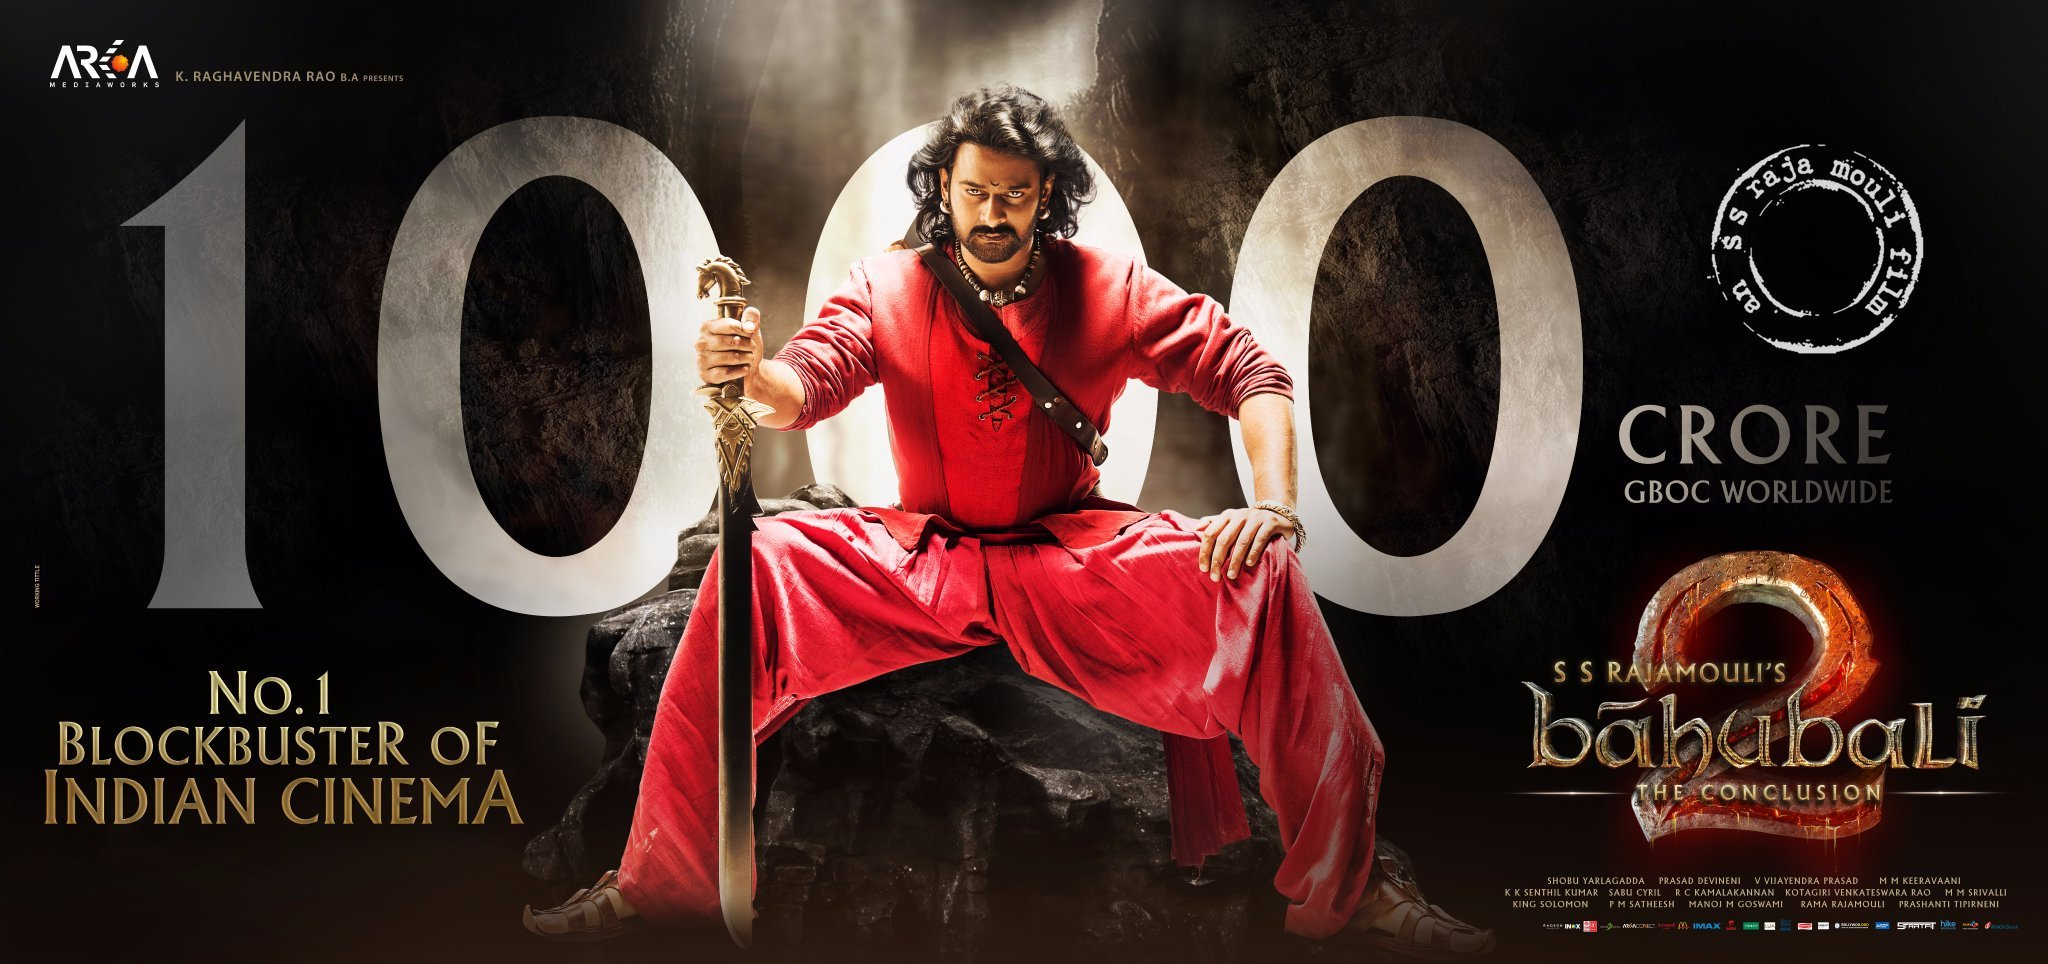 Prabhas Baahubali The Conclusion Movie Wallpapers Ultra: Baahubali New Latest ULTRA HD Posters Wallpapers